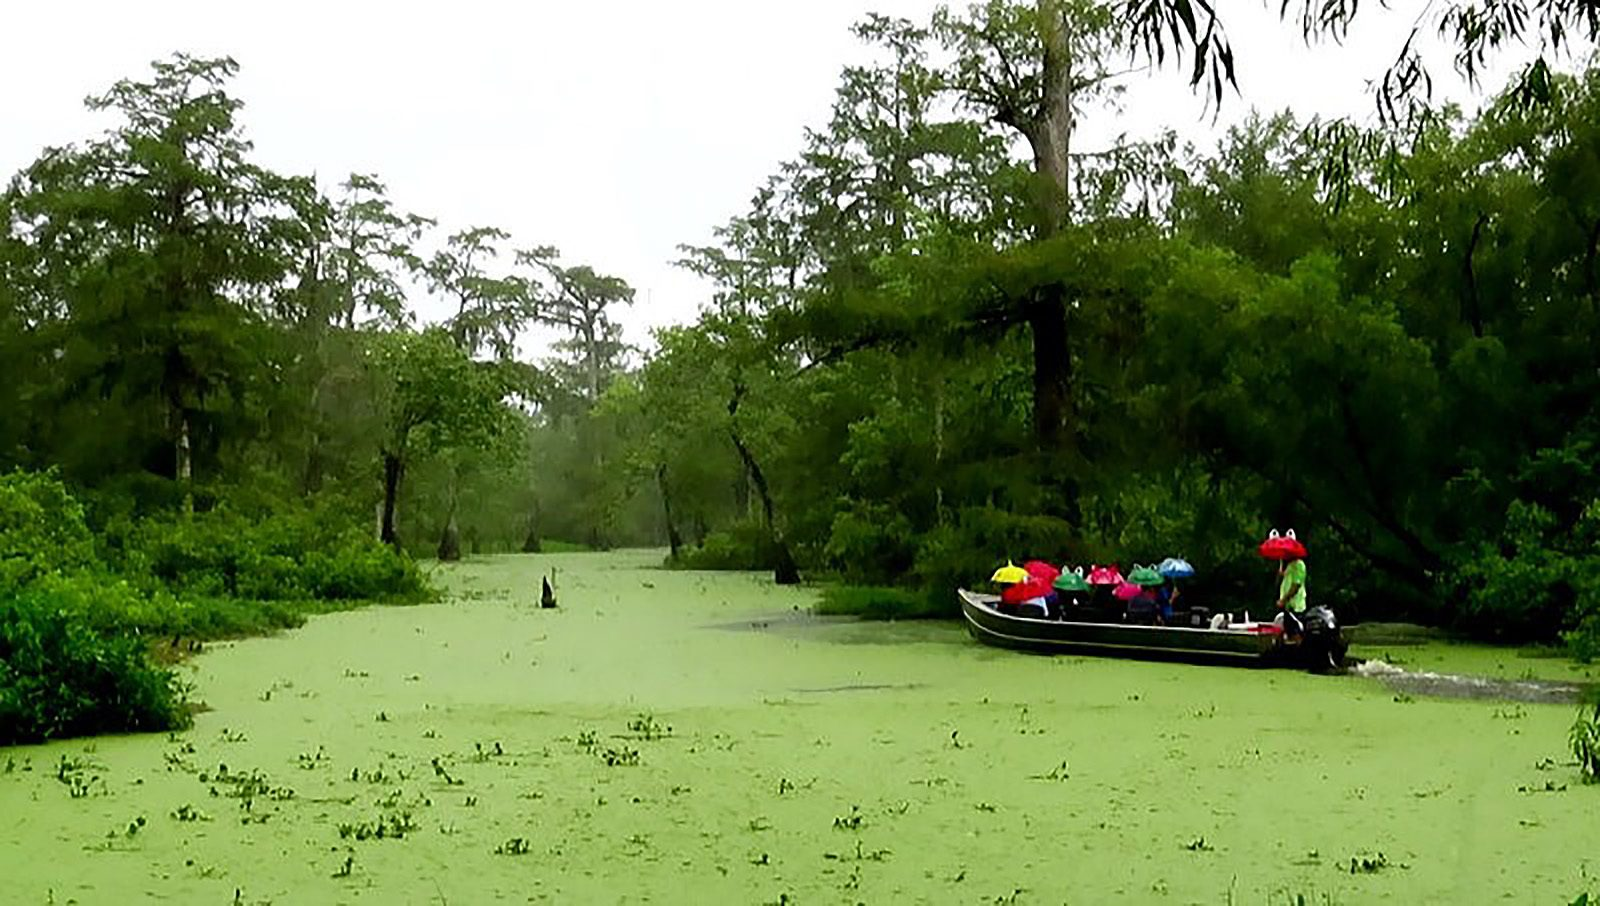 Rainy, Louisiana Swamp Boat Ride